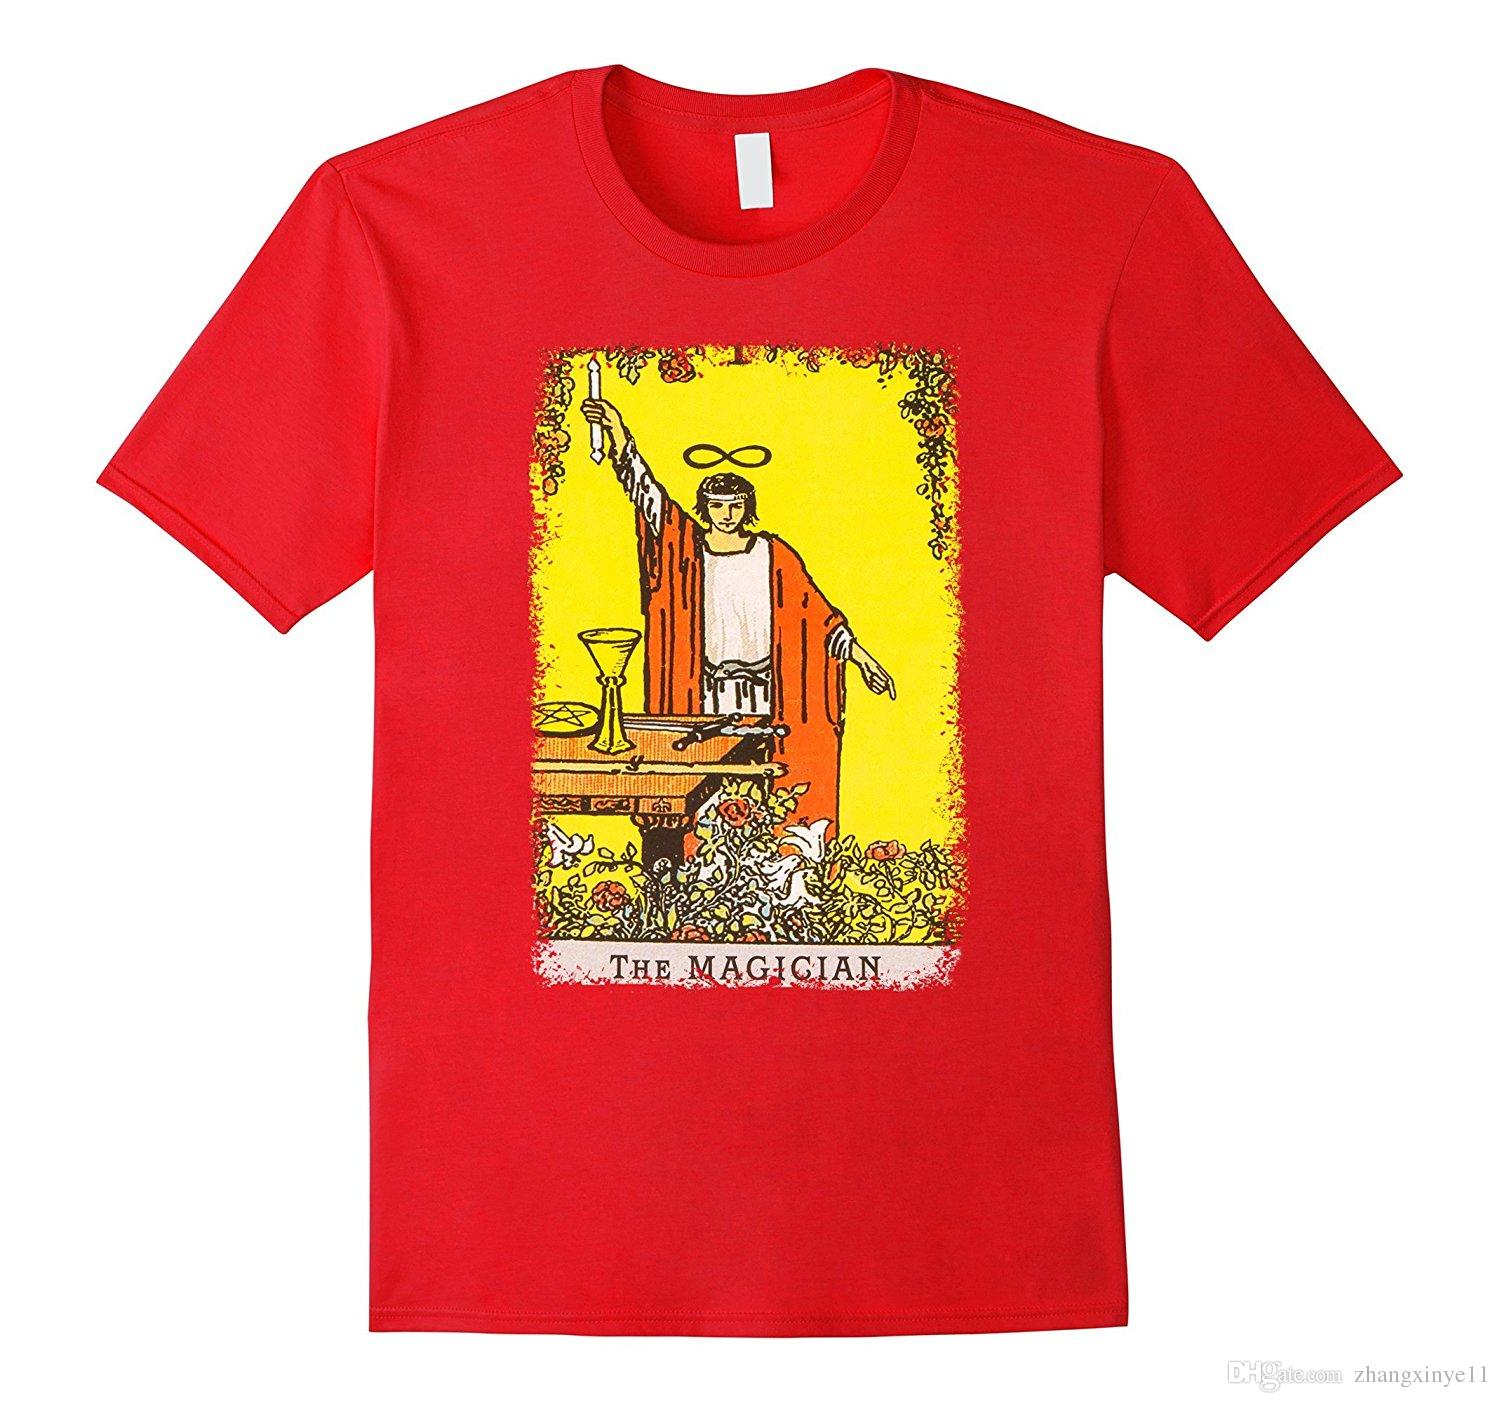 The Magician TAROT CARD SHIRT